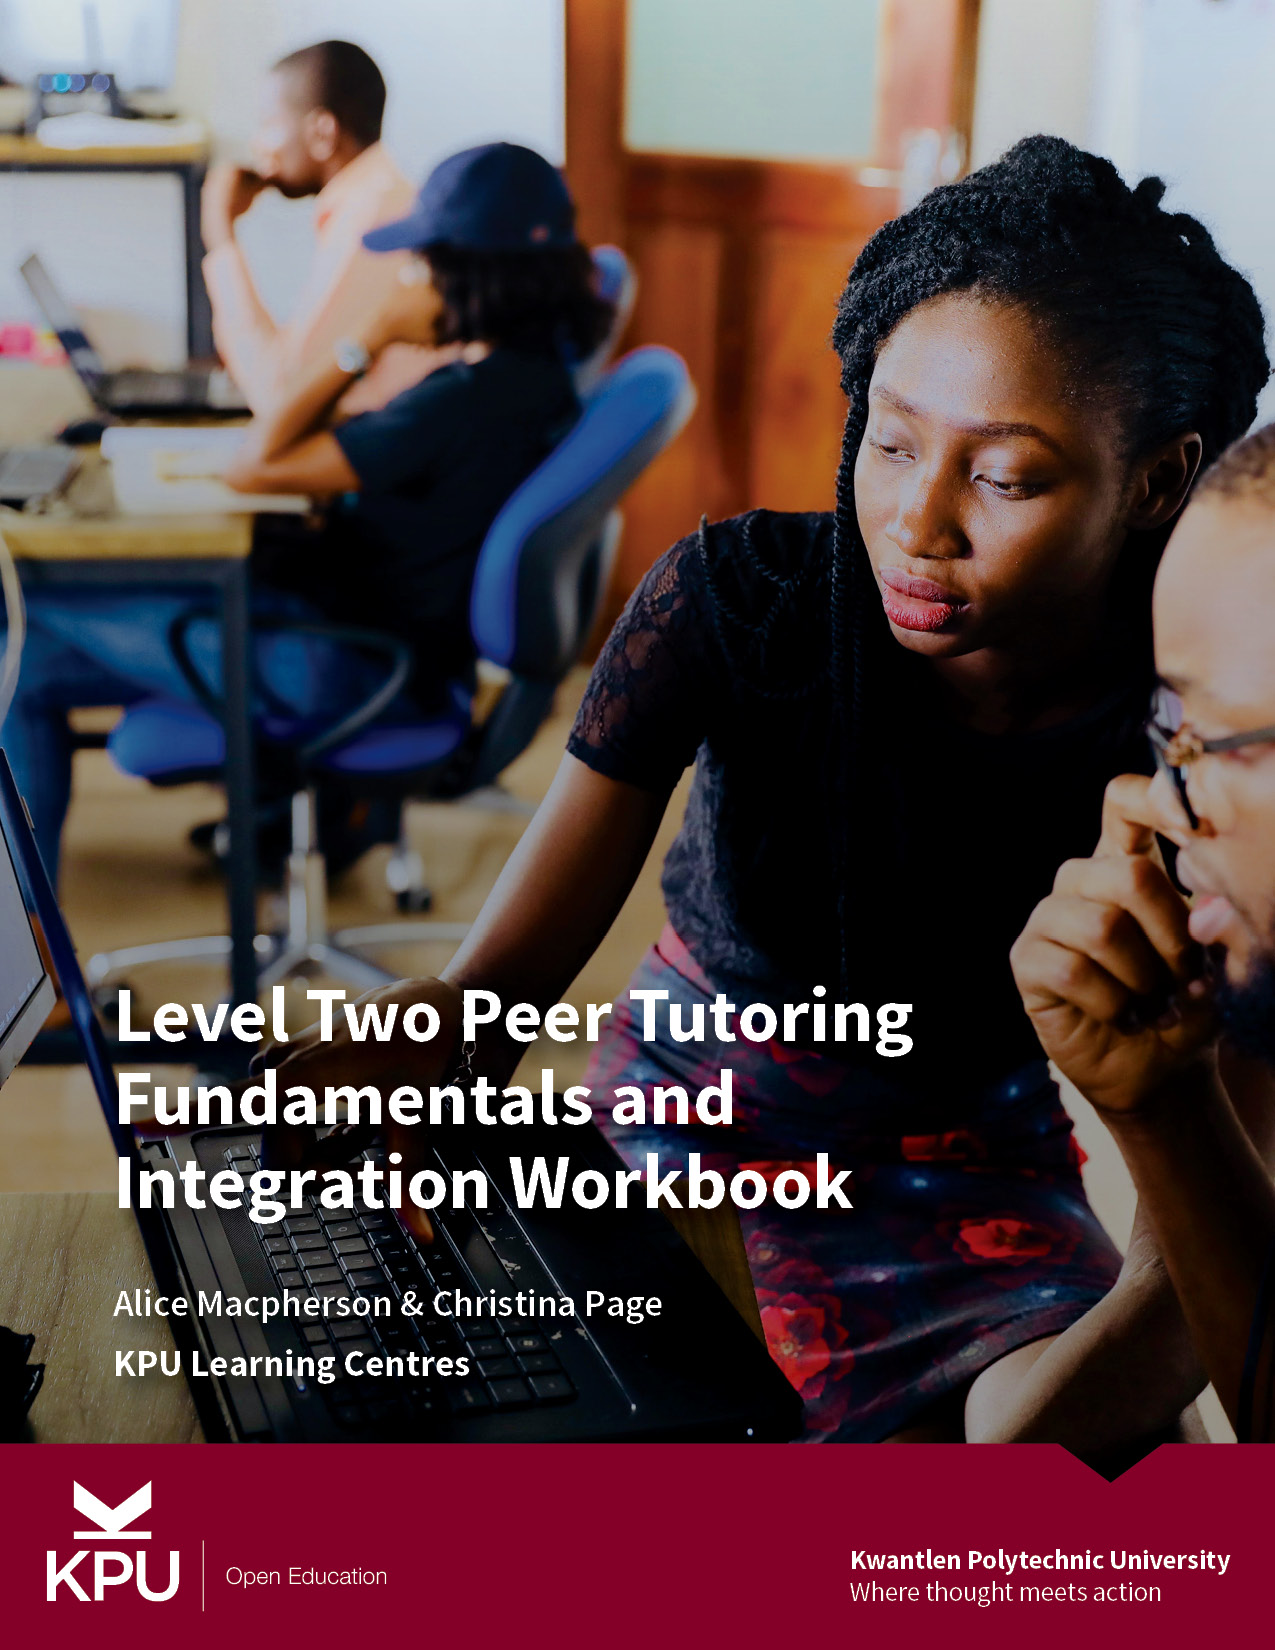 Cover image for Level Two Peer Tutoring Fundamentals and Integration Workbook